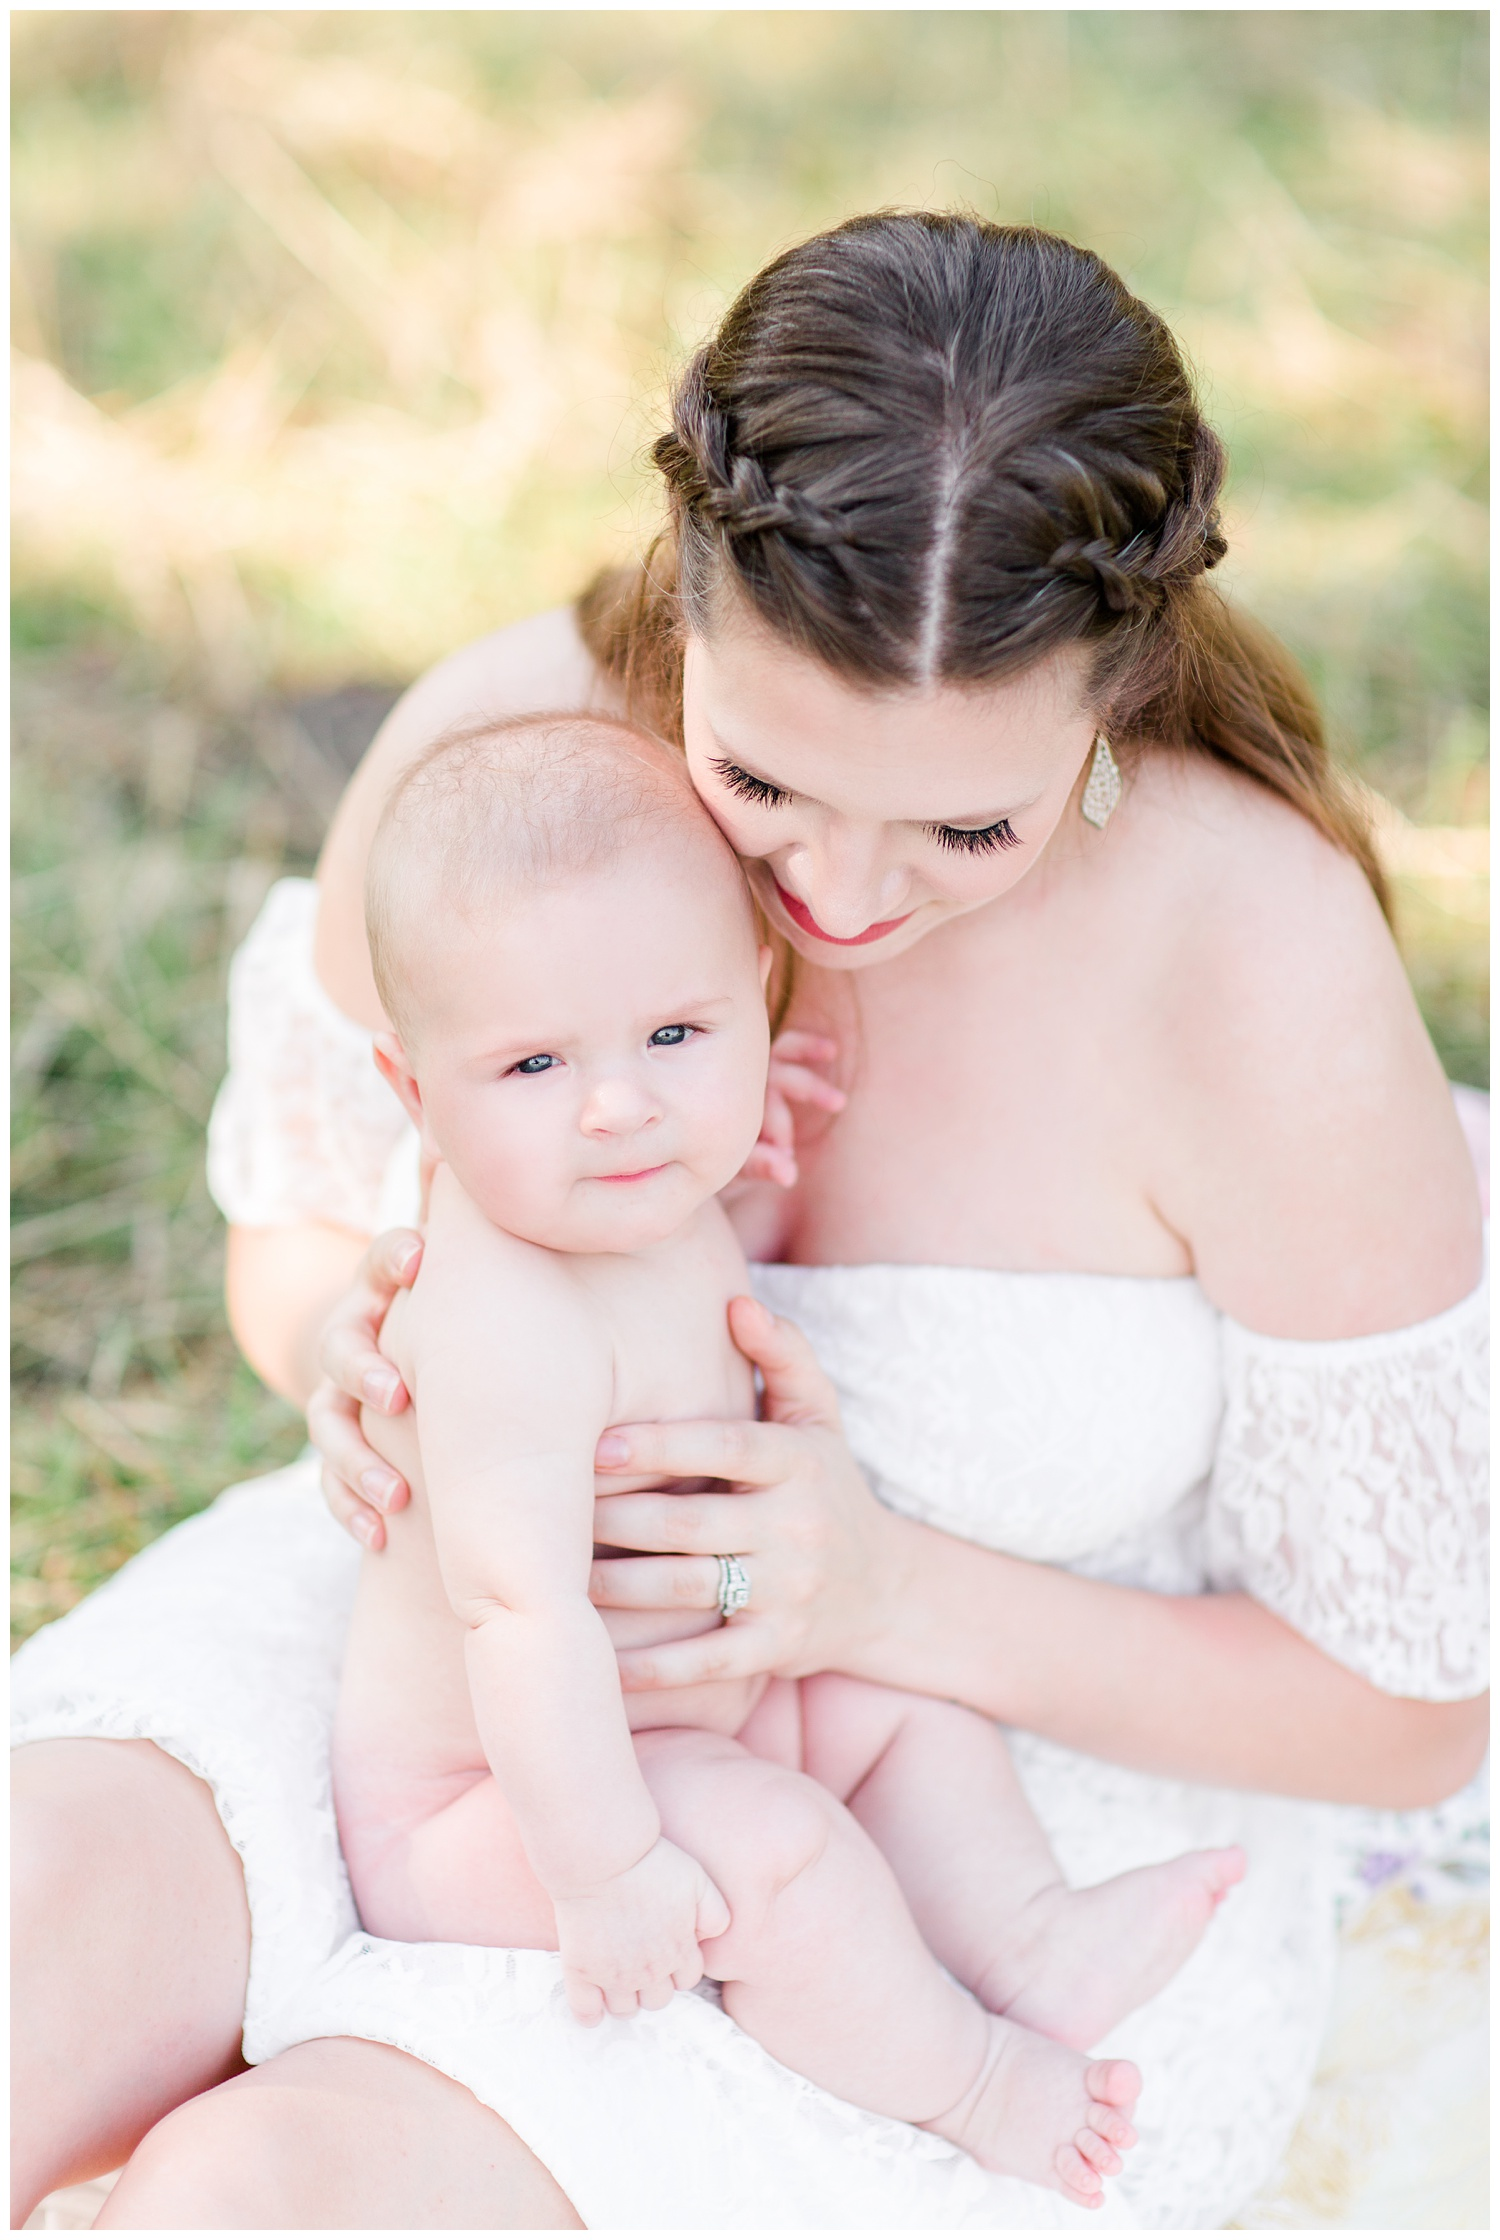 Beautiful mama wearing a white lacy dress sits in a glowy, grassy field snuggling her smiling baby boy | CB Studio